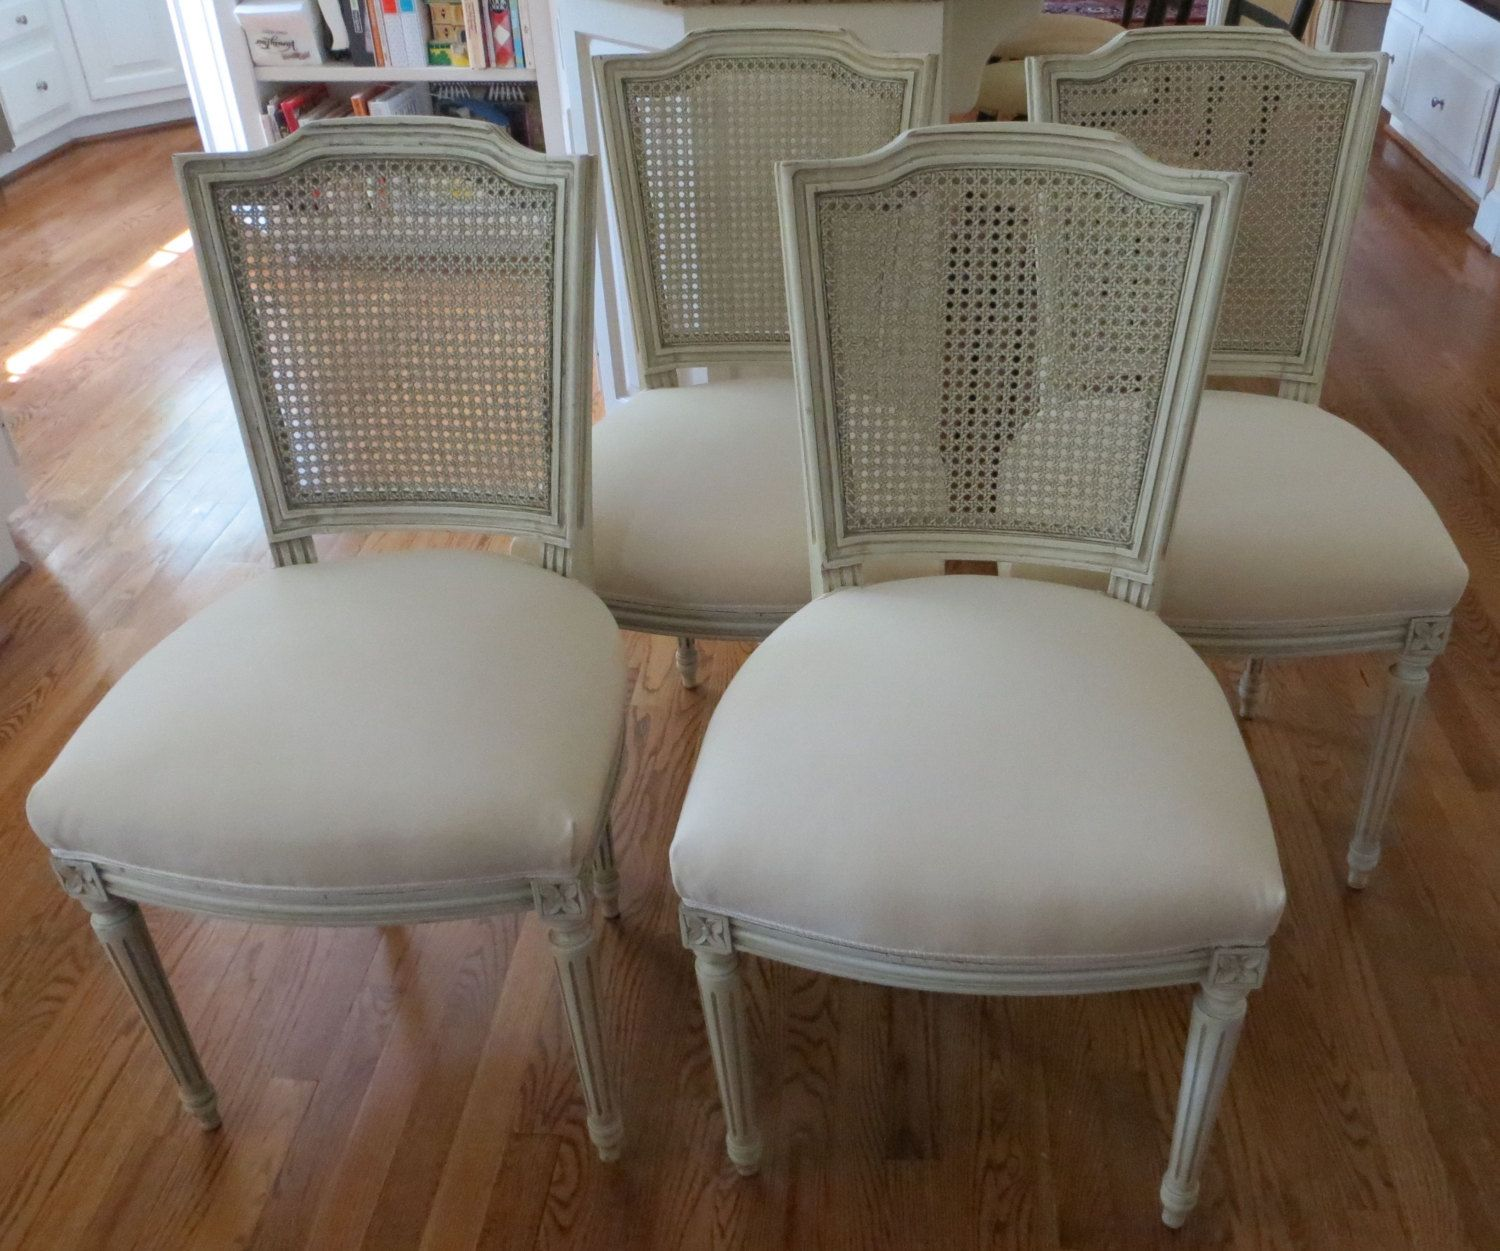 Four Italian Antique Caned Back Dining Chairs   Totally Refurbished By  WydevenDesigns On Etsy